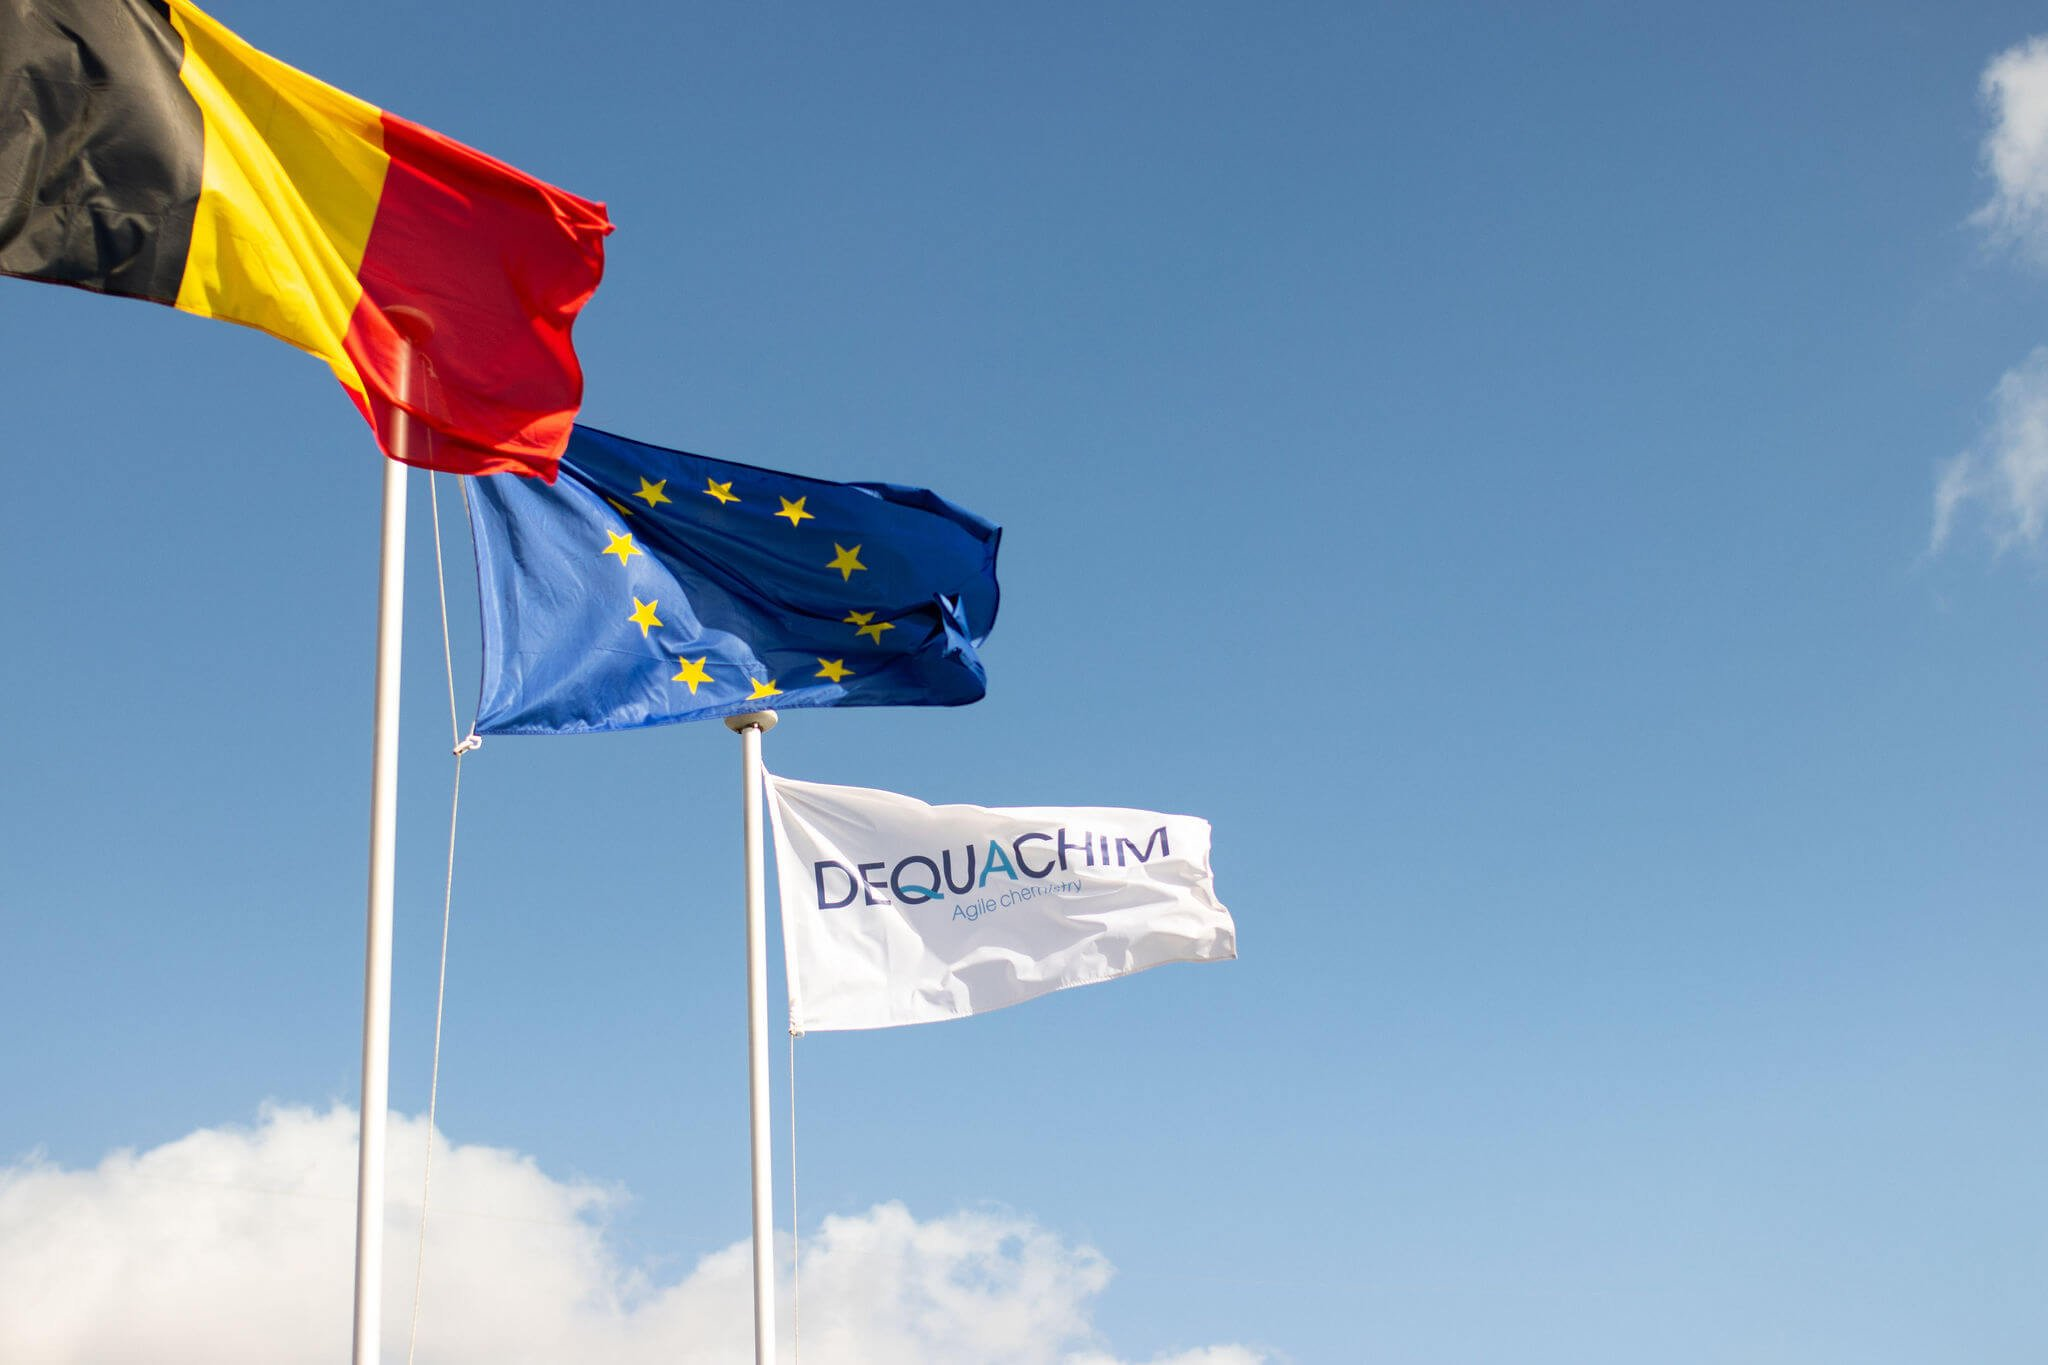 Belgian, European and Dequachim flags on blue sky background